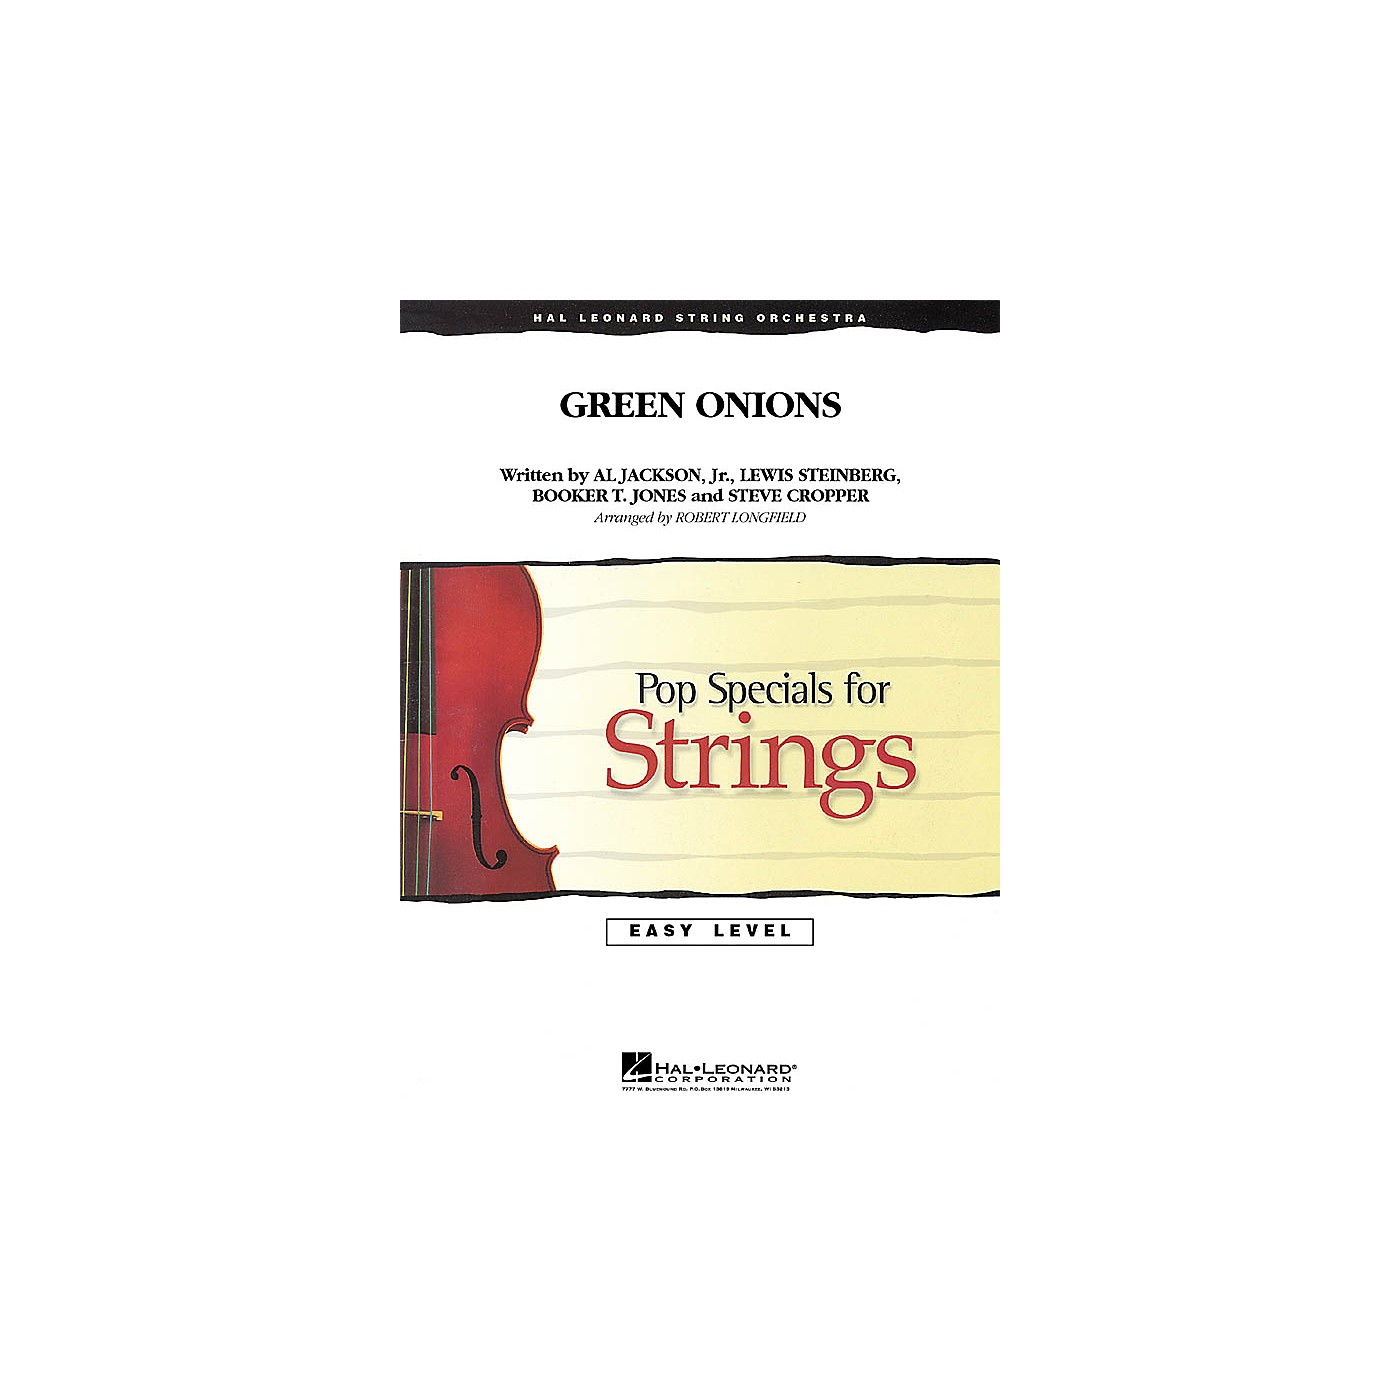 Hal Leonard Green Onions Easy Pop Specials For Strings Series Softcover Arranged by Robert Longfield thumbnail